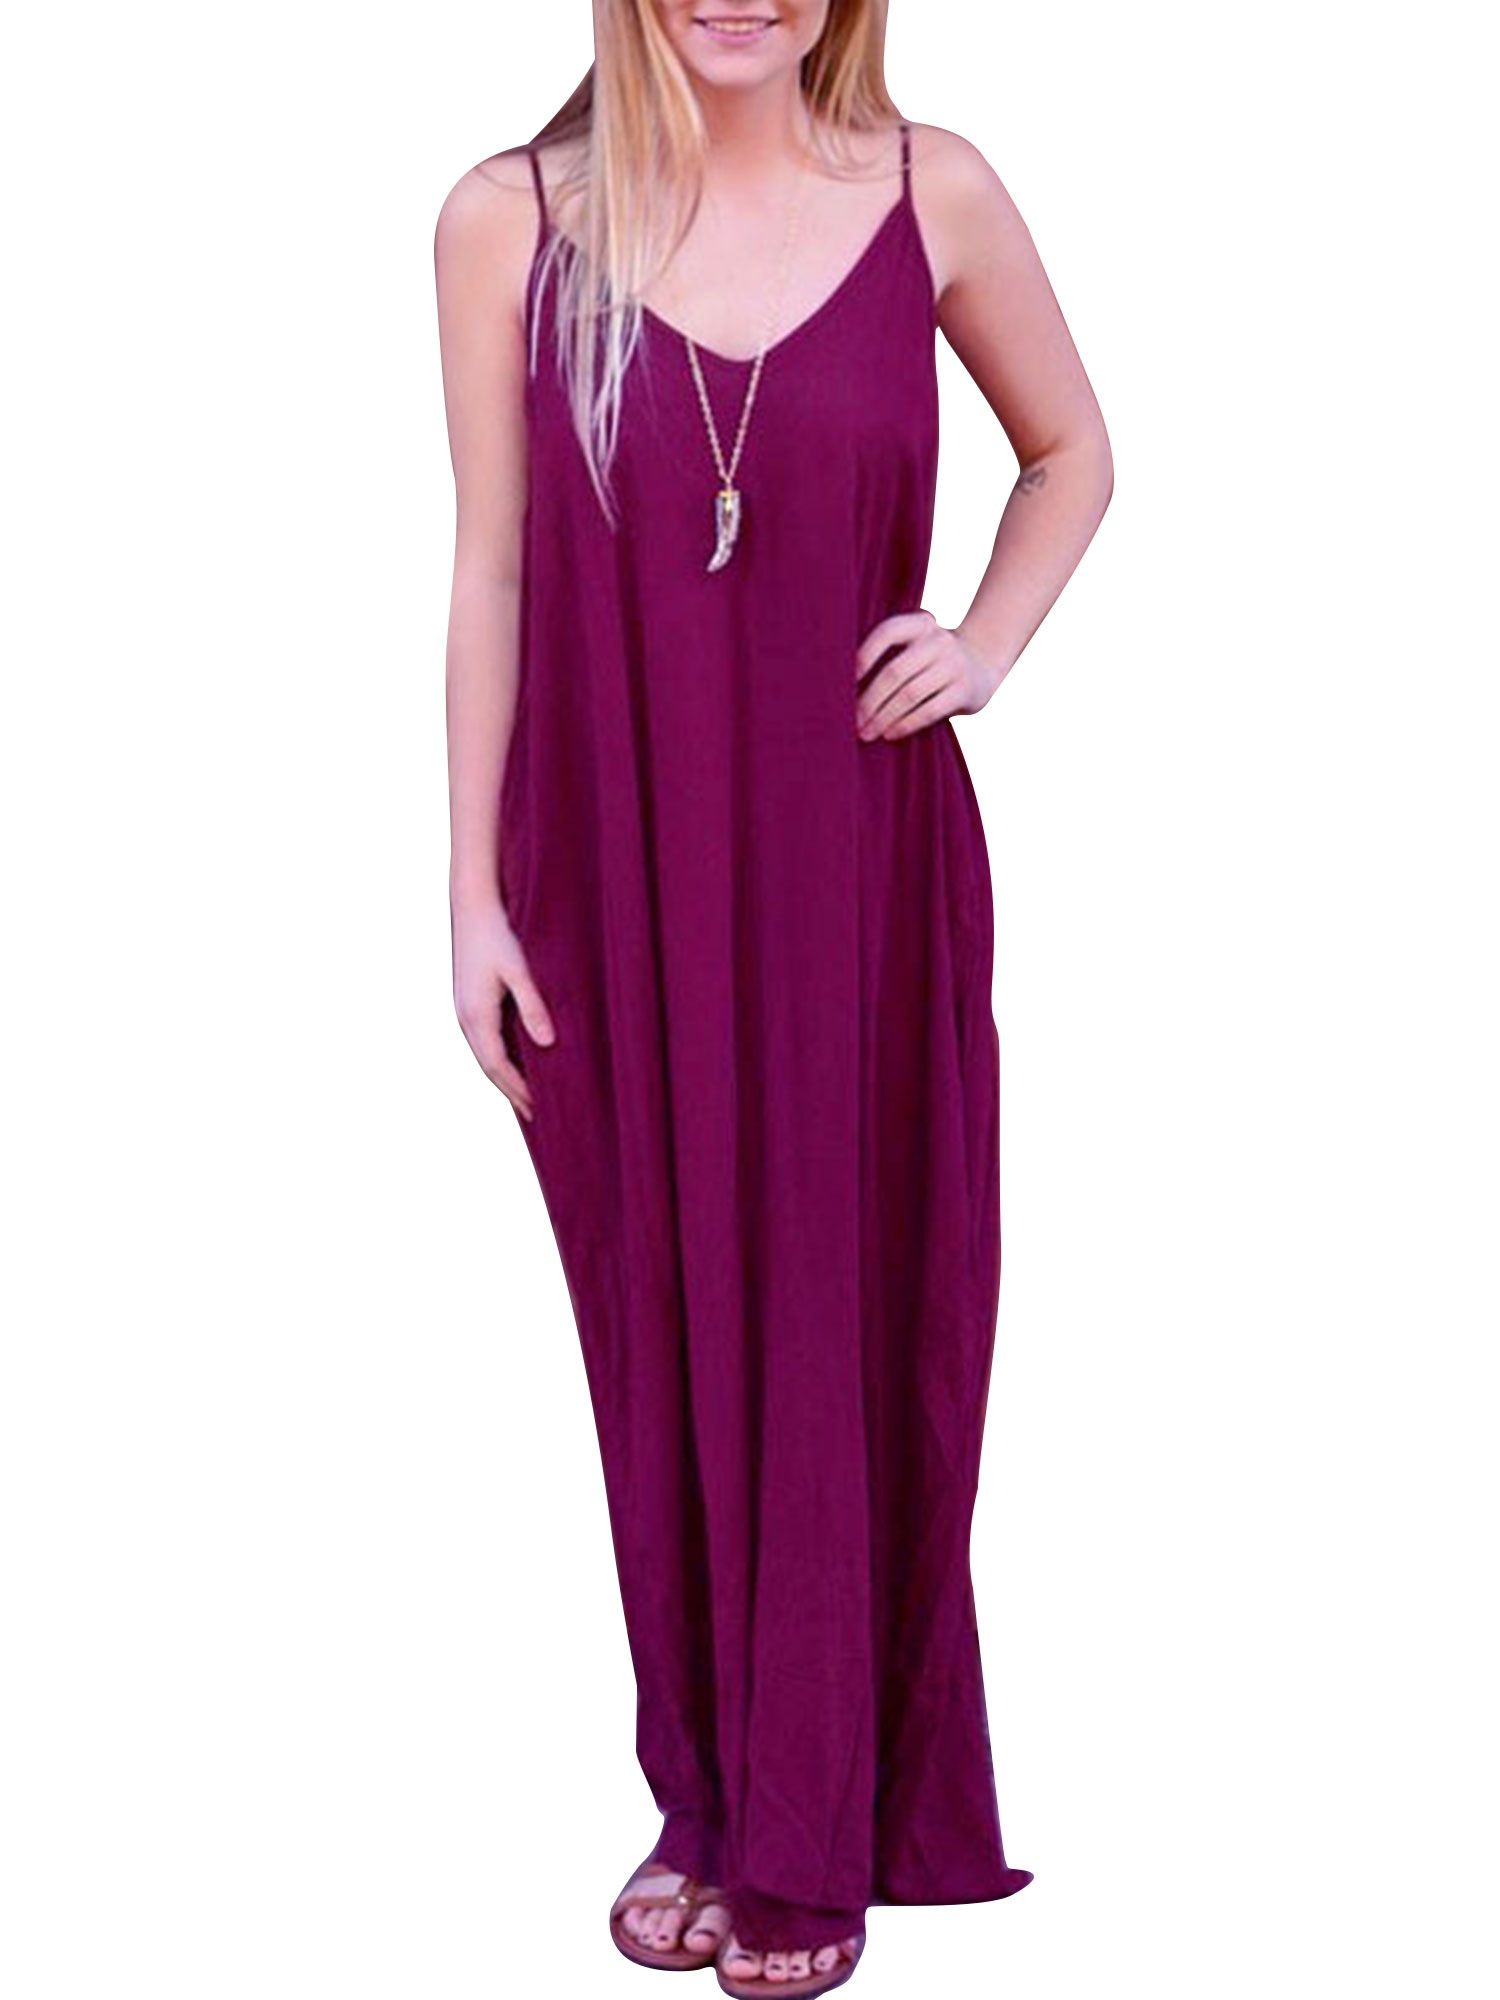 5c724c93e2a9e Spaghetti Strap Sun Dress For Women V Neck Sleeveless Dress Ladies Boho  Style Long Maxi Loose Baggy Kaftan Dresses #Neck, #AD, #Women, #Ladies